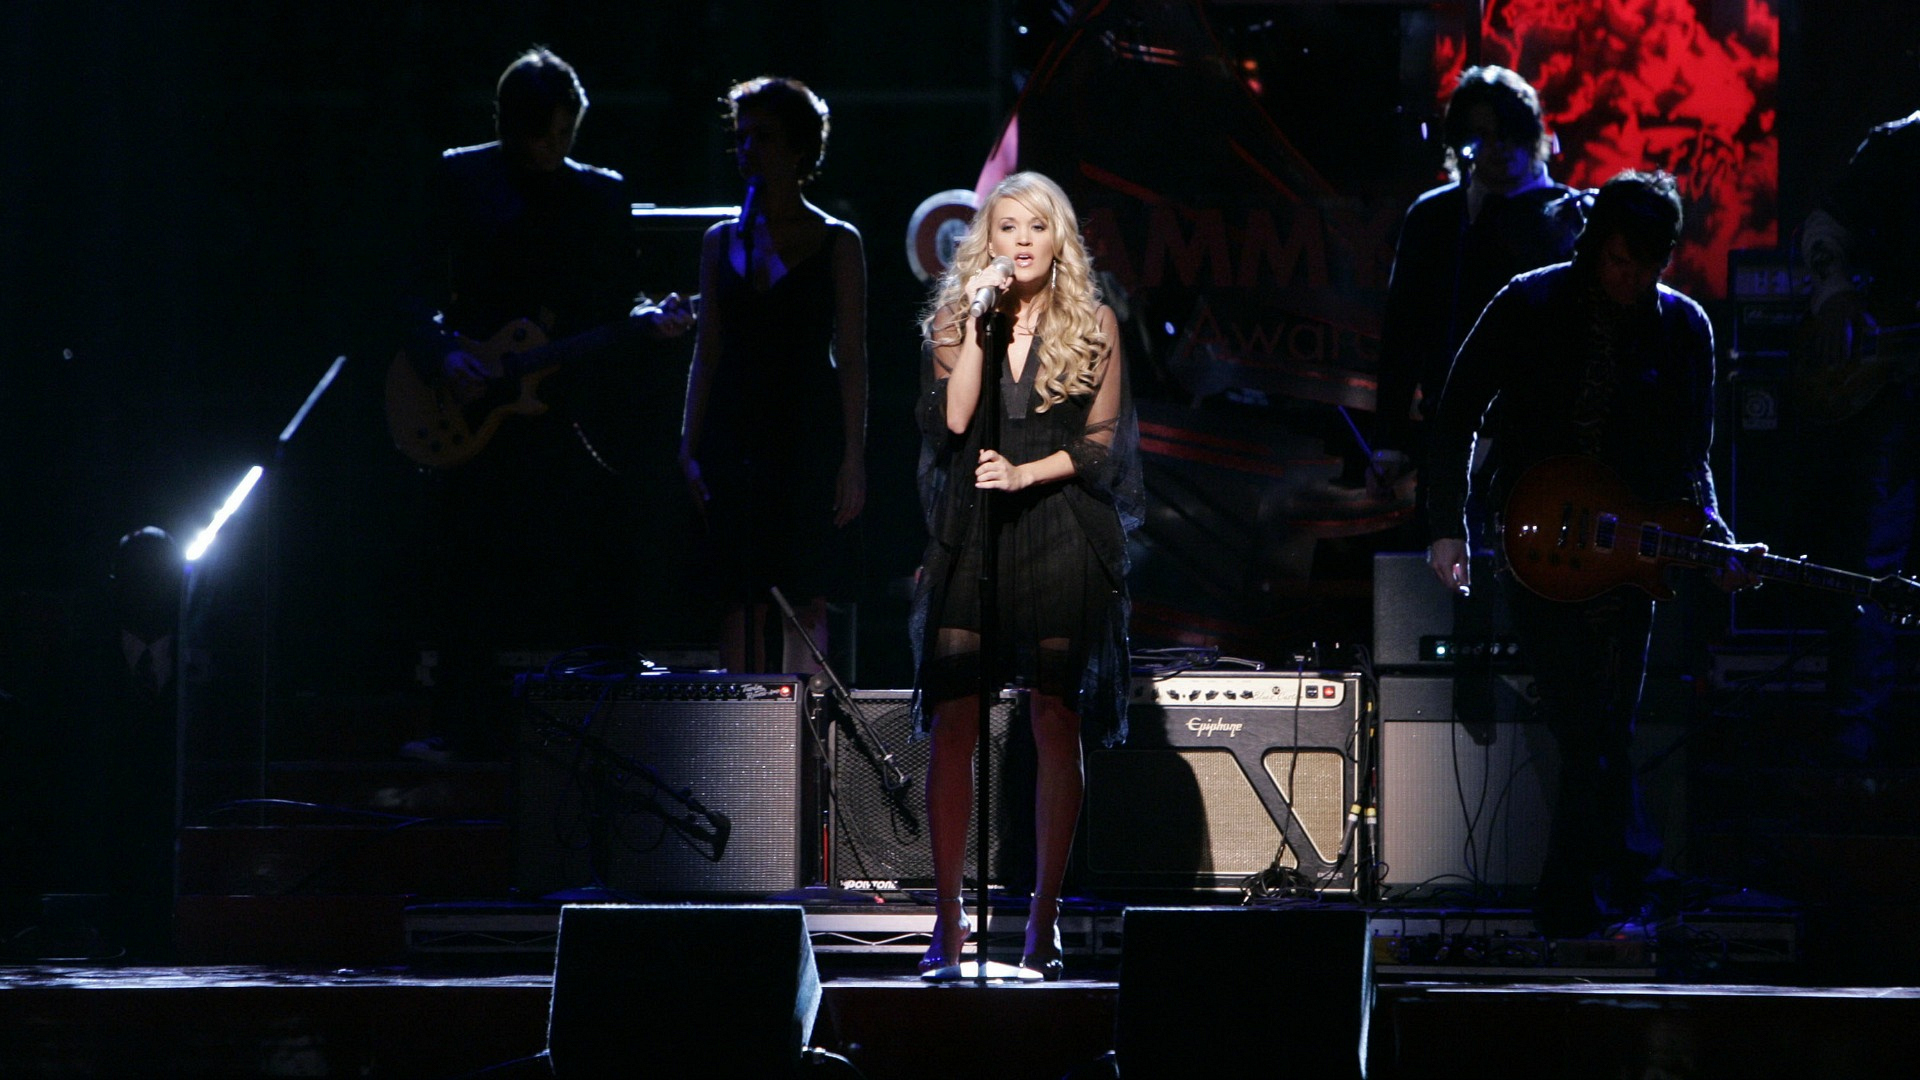 5. When Carrie Underwood's Best New Artist win defied expectations.